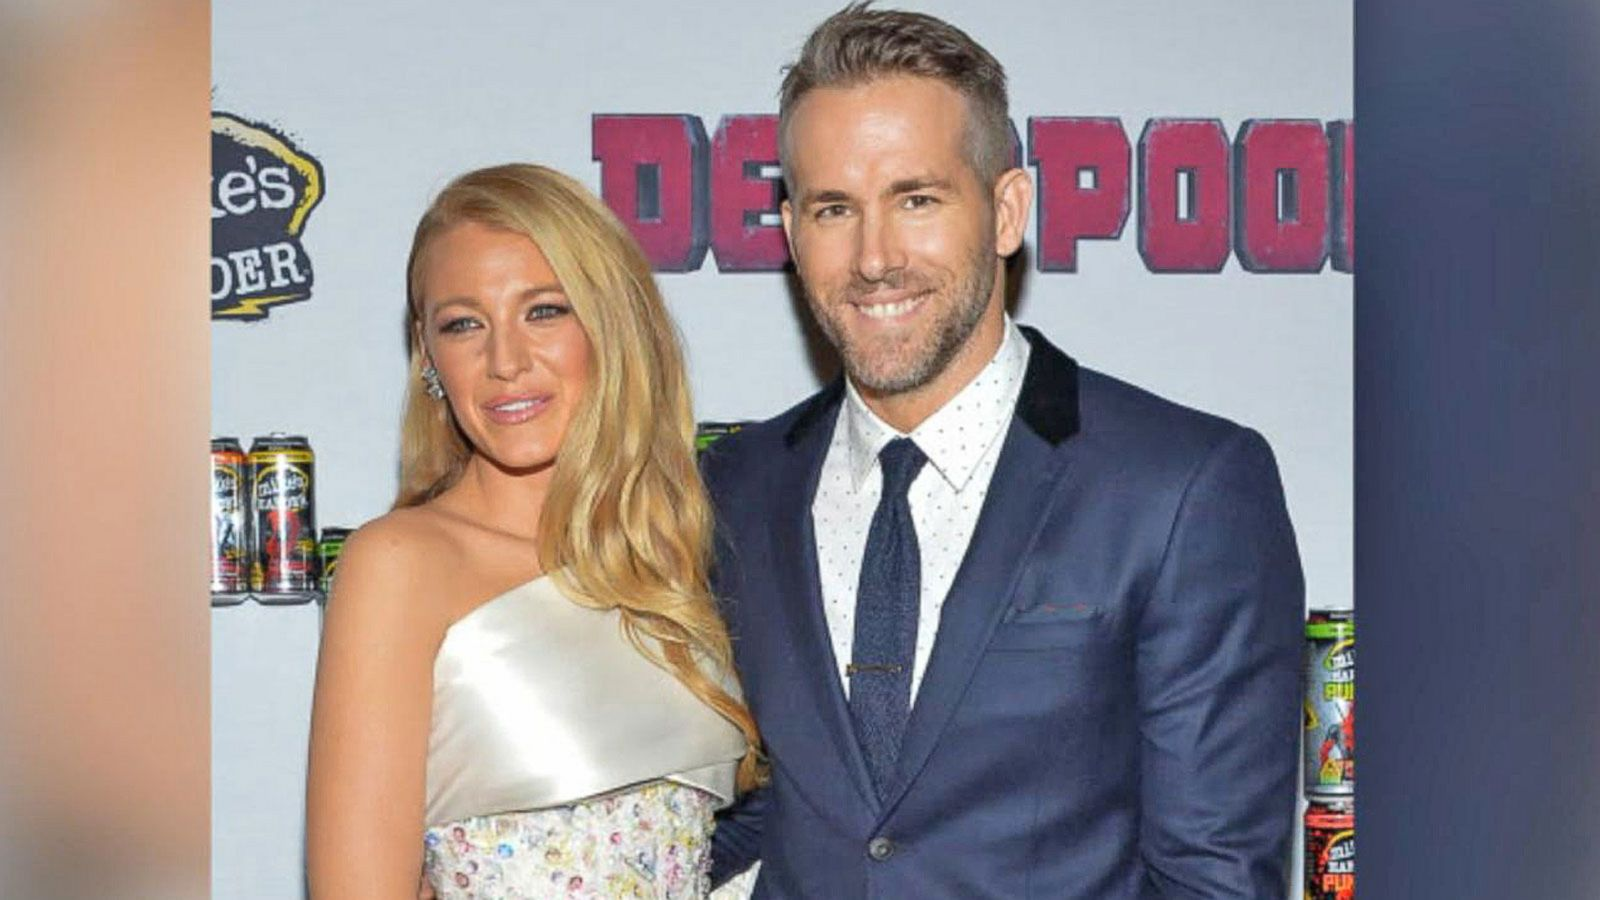 VIDEO: Blake Lively, Ryan Reynolds' 2nd Child is Born